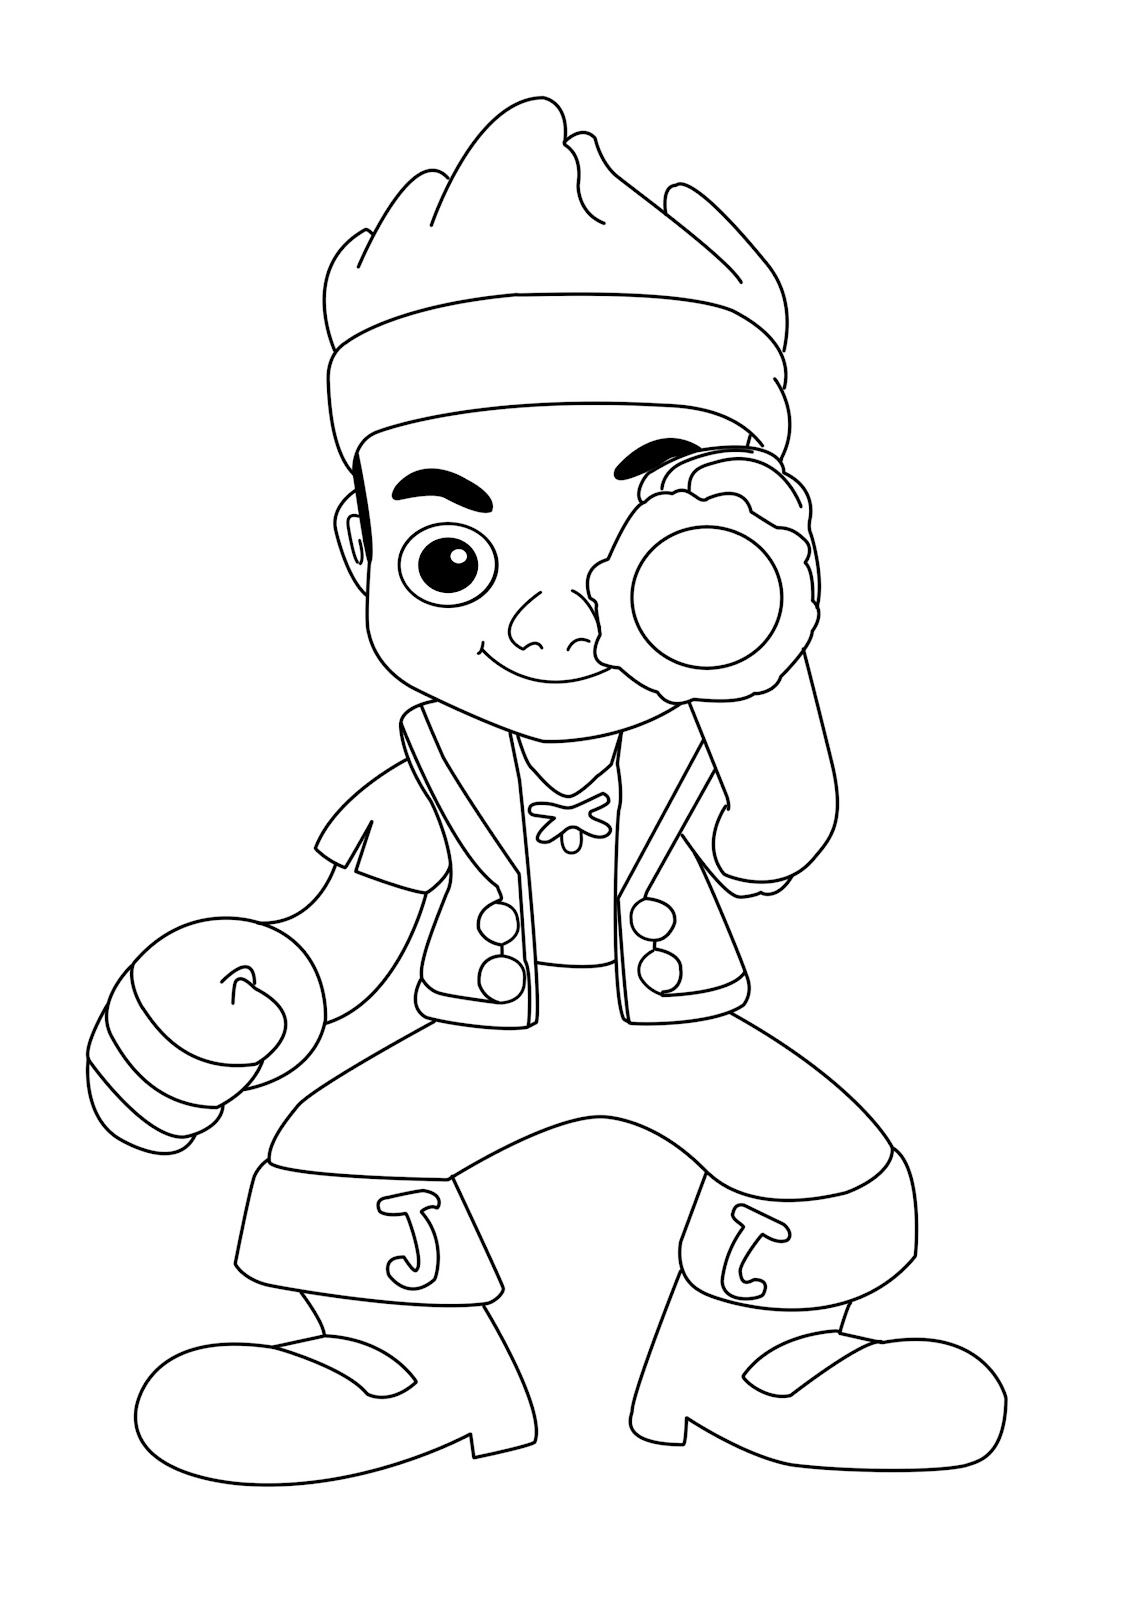 Jake Coloring Page | Pirate Party | Pinterest | Pirate halloween